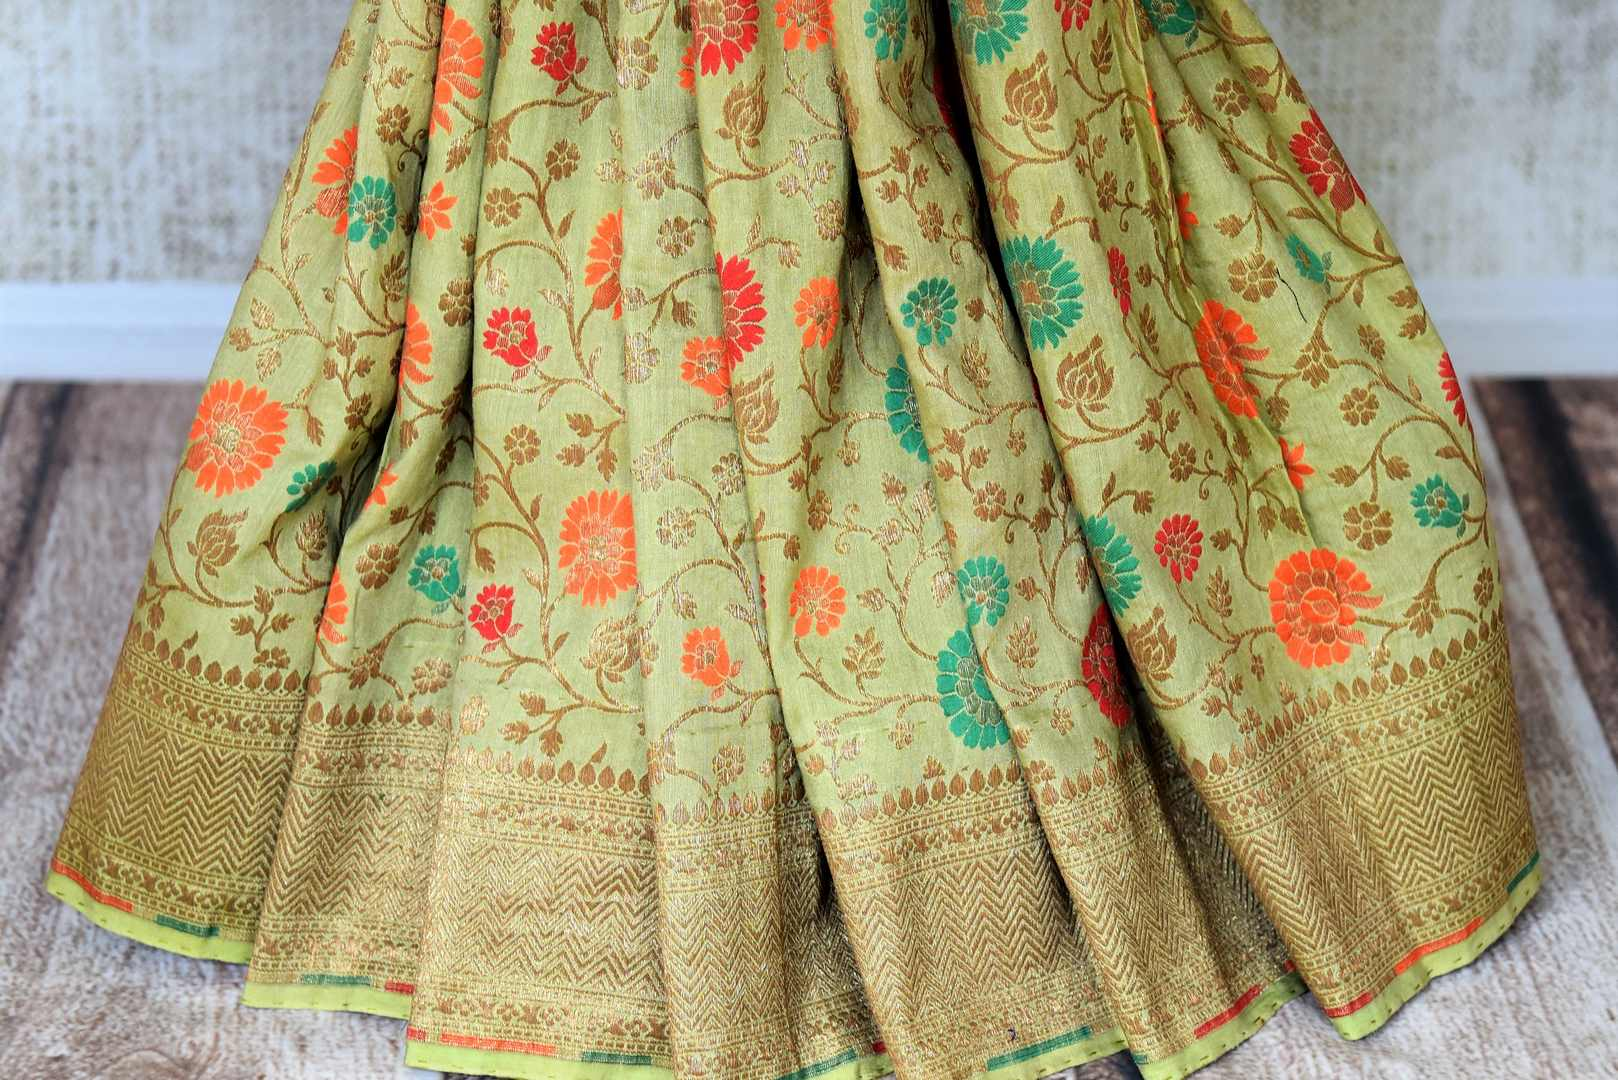 Shop green color muga Banarasi saree online in USA with floral zari and minakari work from Pure Elegance online store. Visit our exclusive Indian clothing store in USA and get floored by a range of exquisite pure handloom sarees, Banarasi sarees, silk sarees, Indian jewelry and much more to complete your ethnic look.-pleats